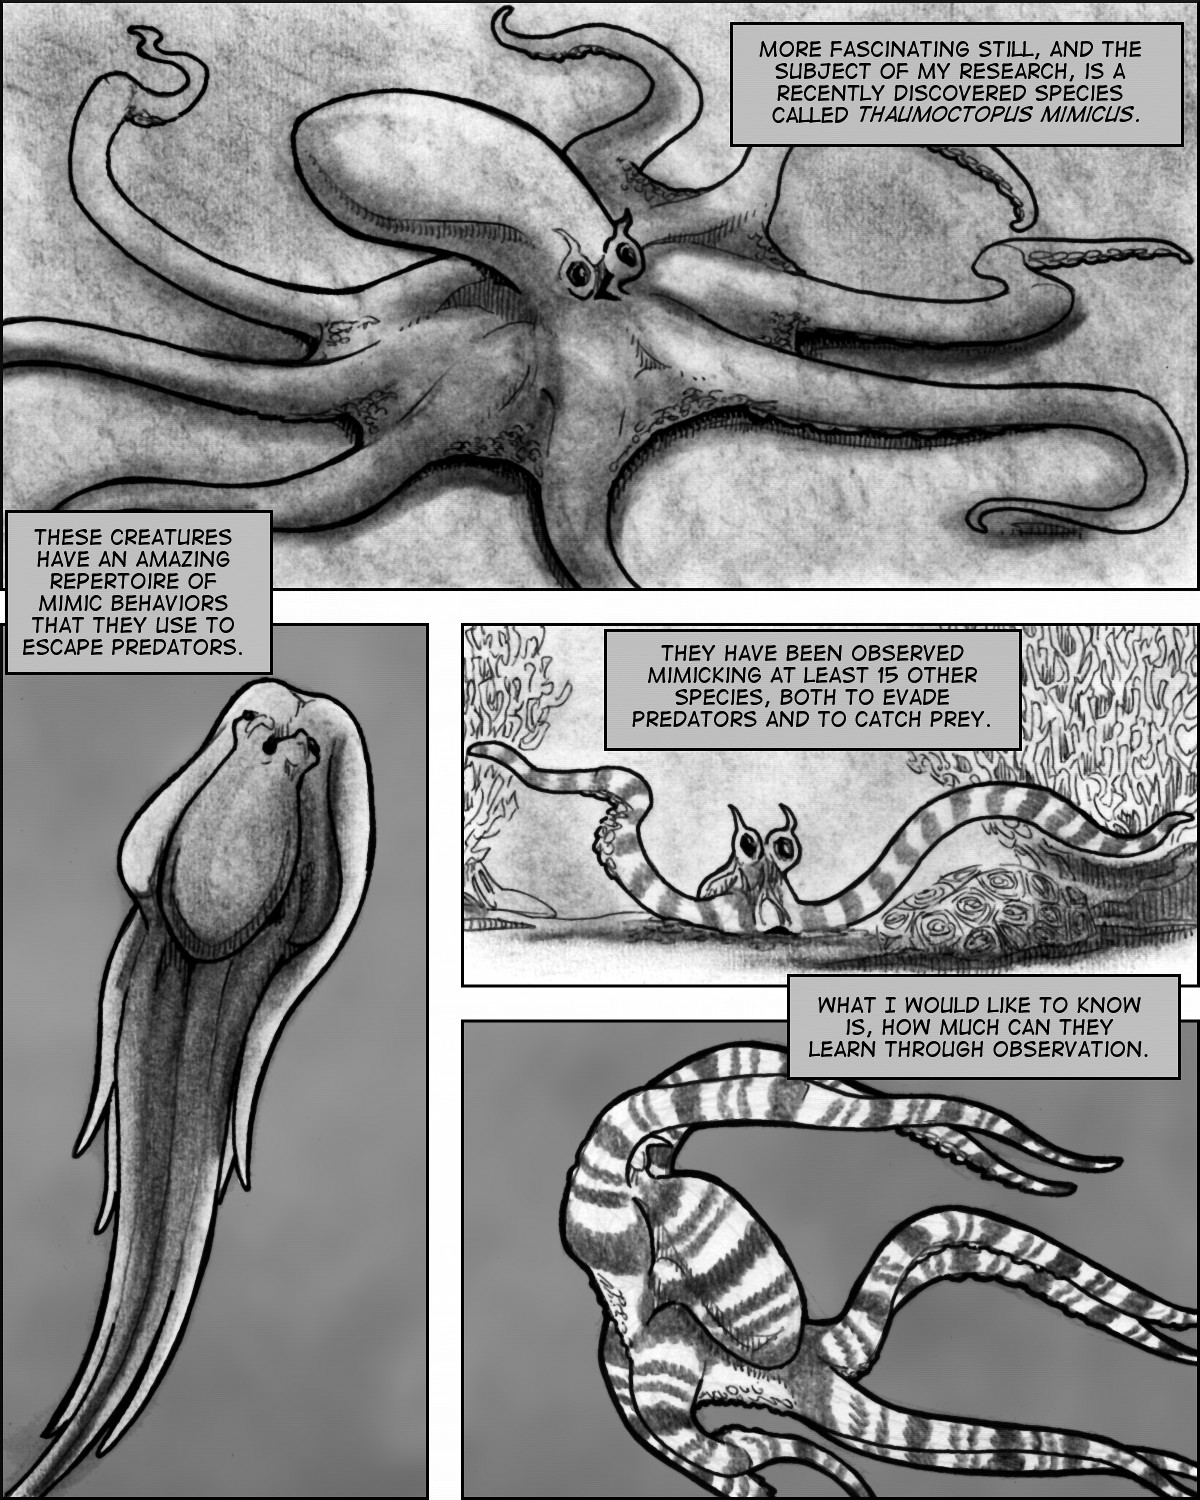 The amazing mimetic abilities of Thaumoctopus mimicus